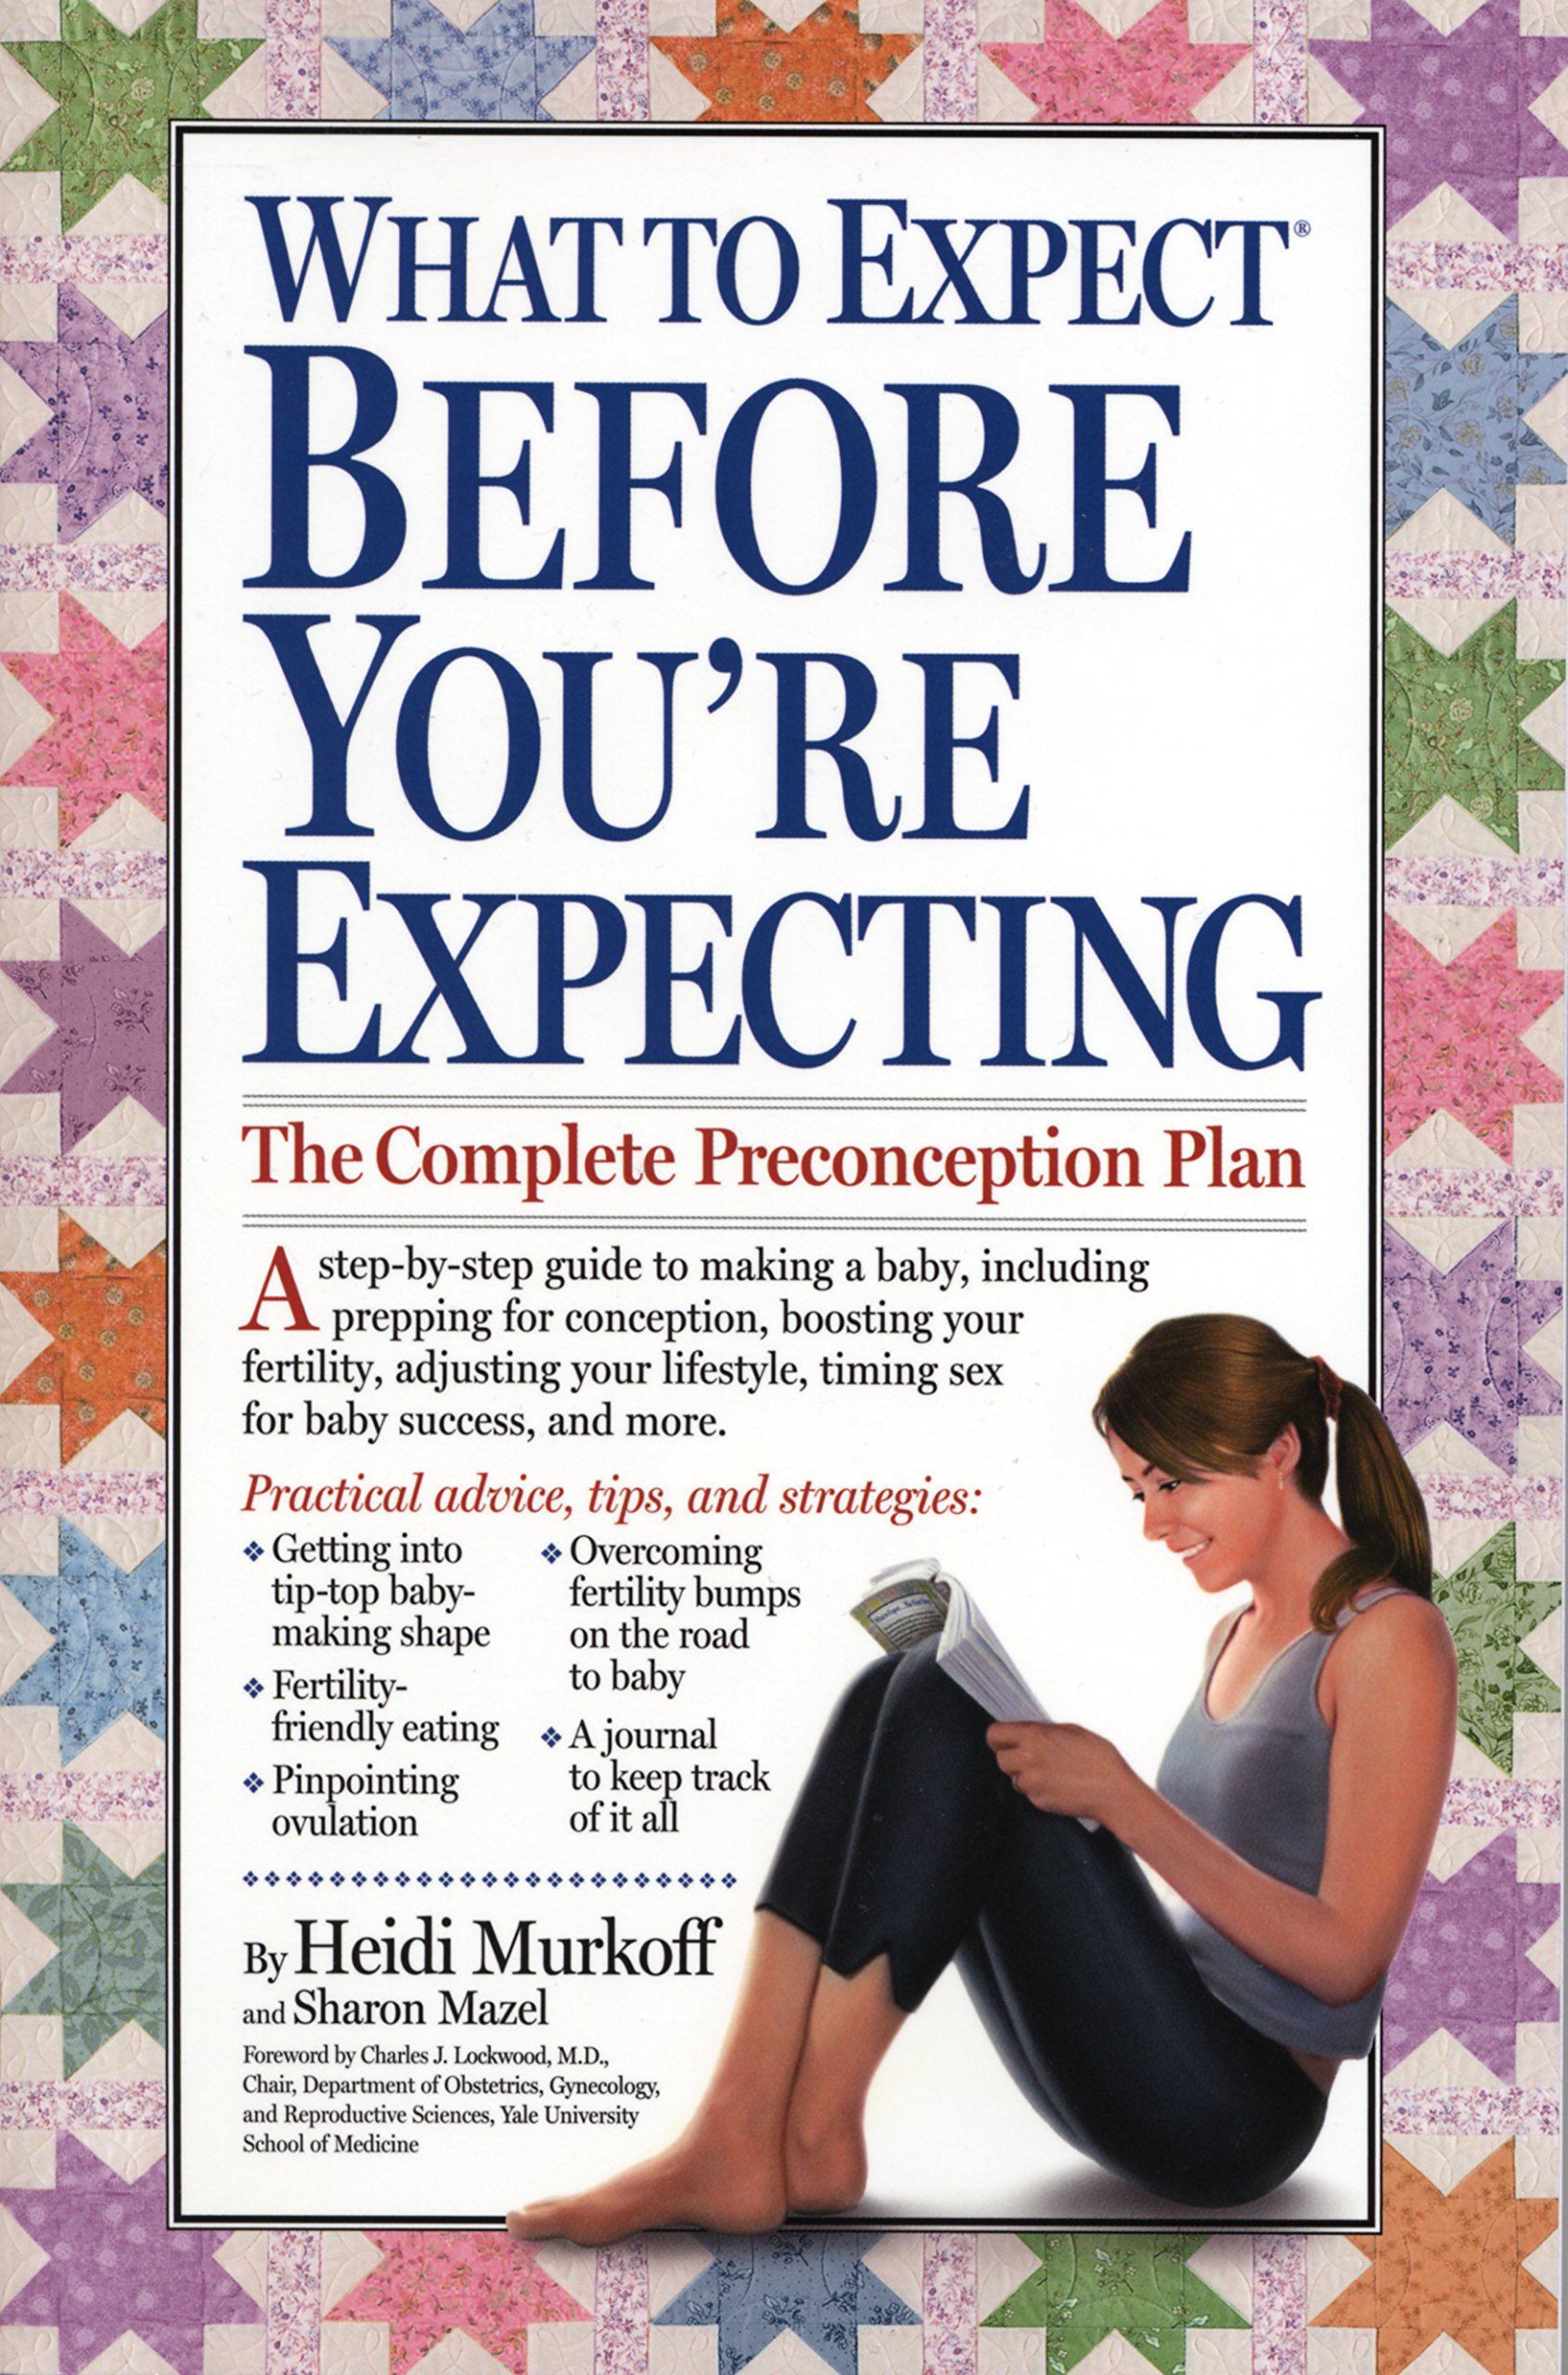 Image OfWhat To Expect Before You're Expecting